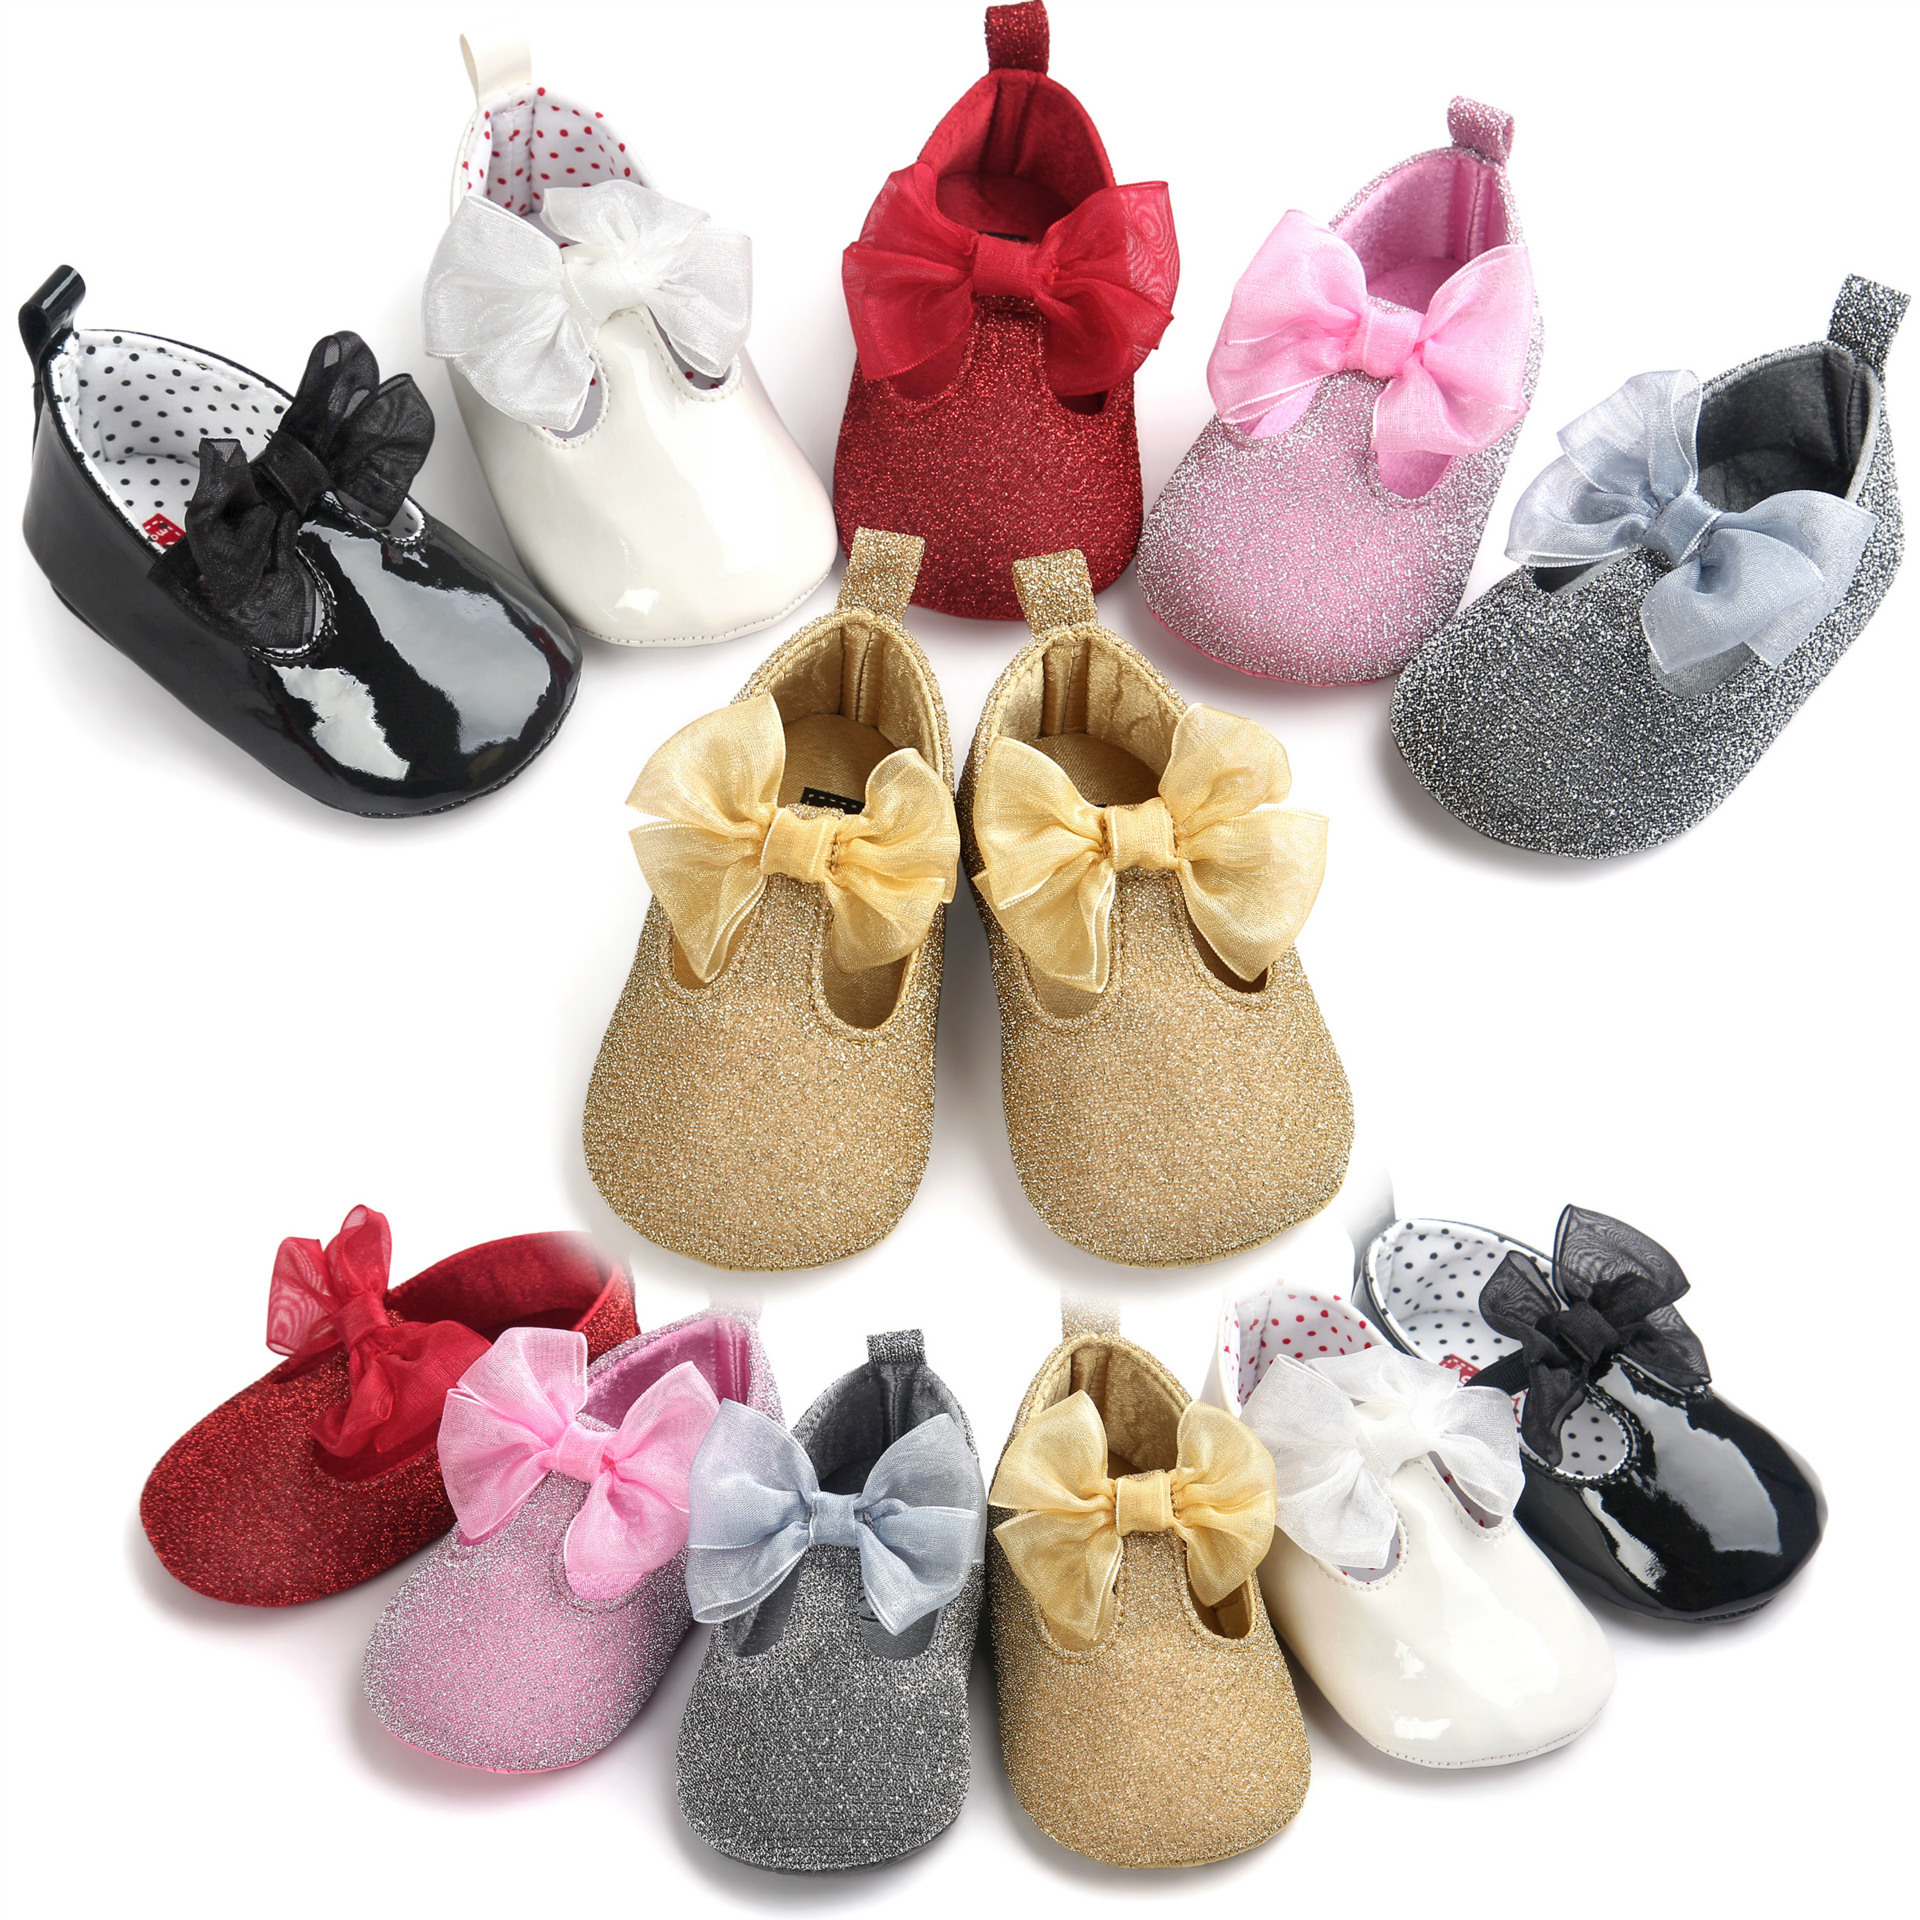 Shining Bright Baby Shoes Bling Bling Female Girls Toddler Shoes Ballet Princess Newborn Crib Shoes First Walkers